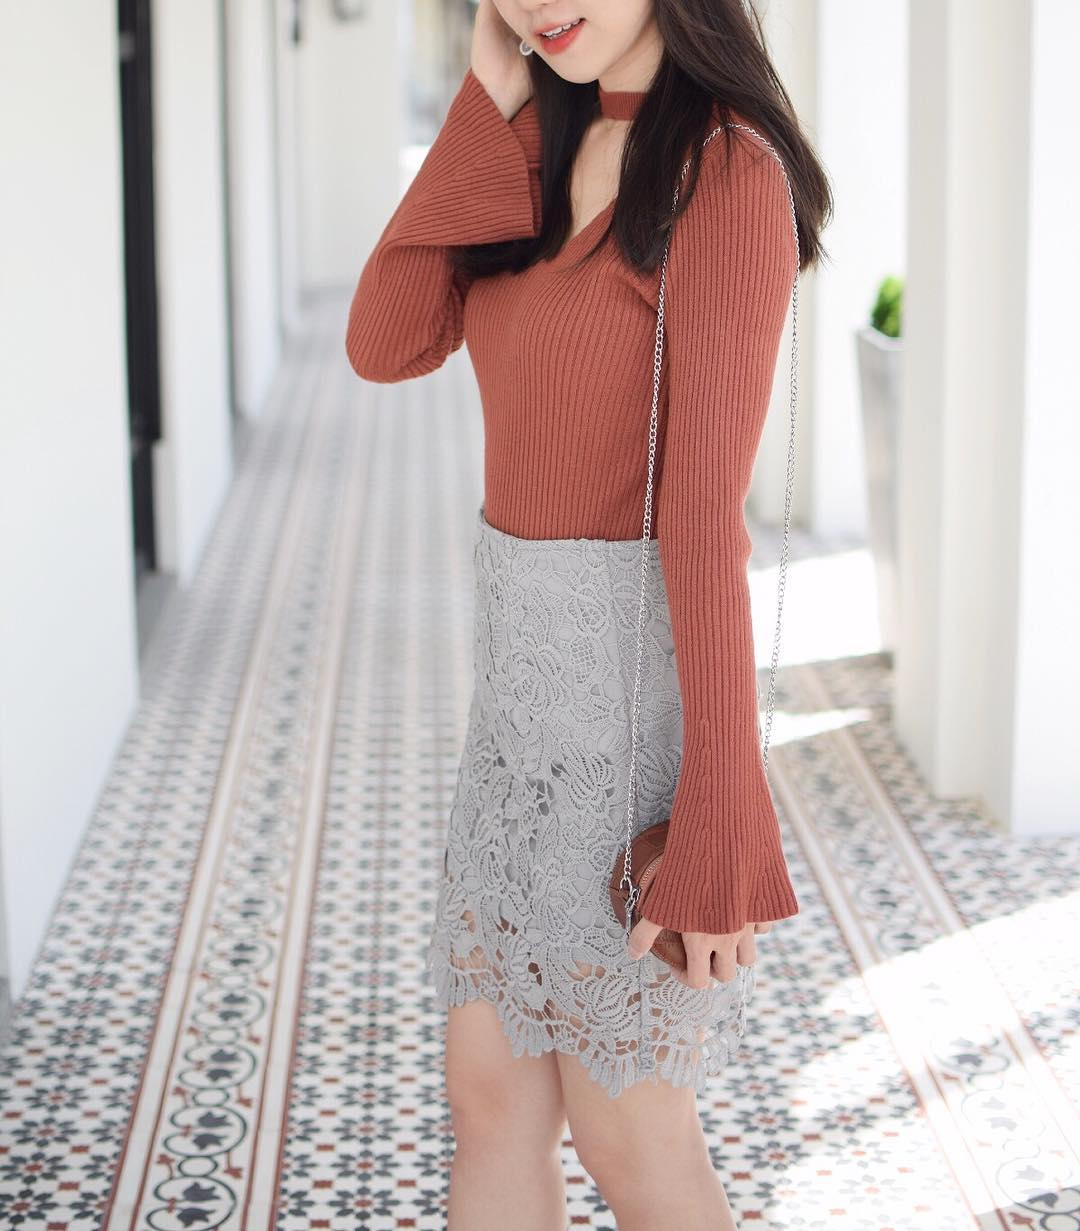 Vibrant Lace Skirt With Sweater